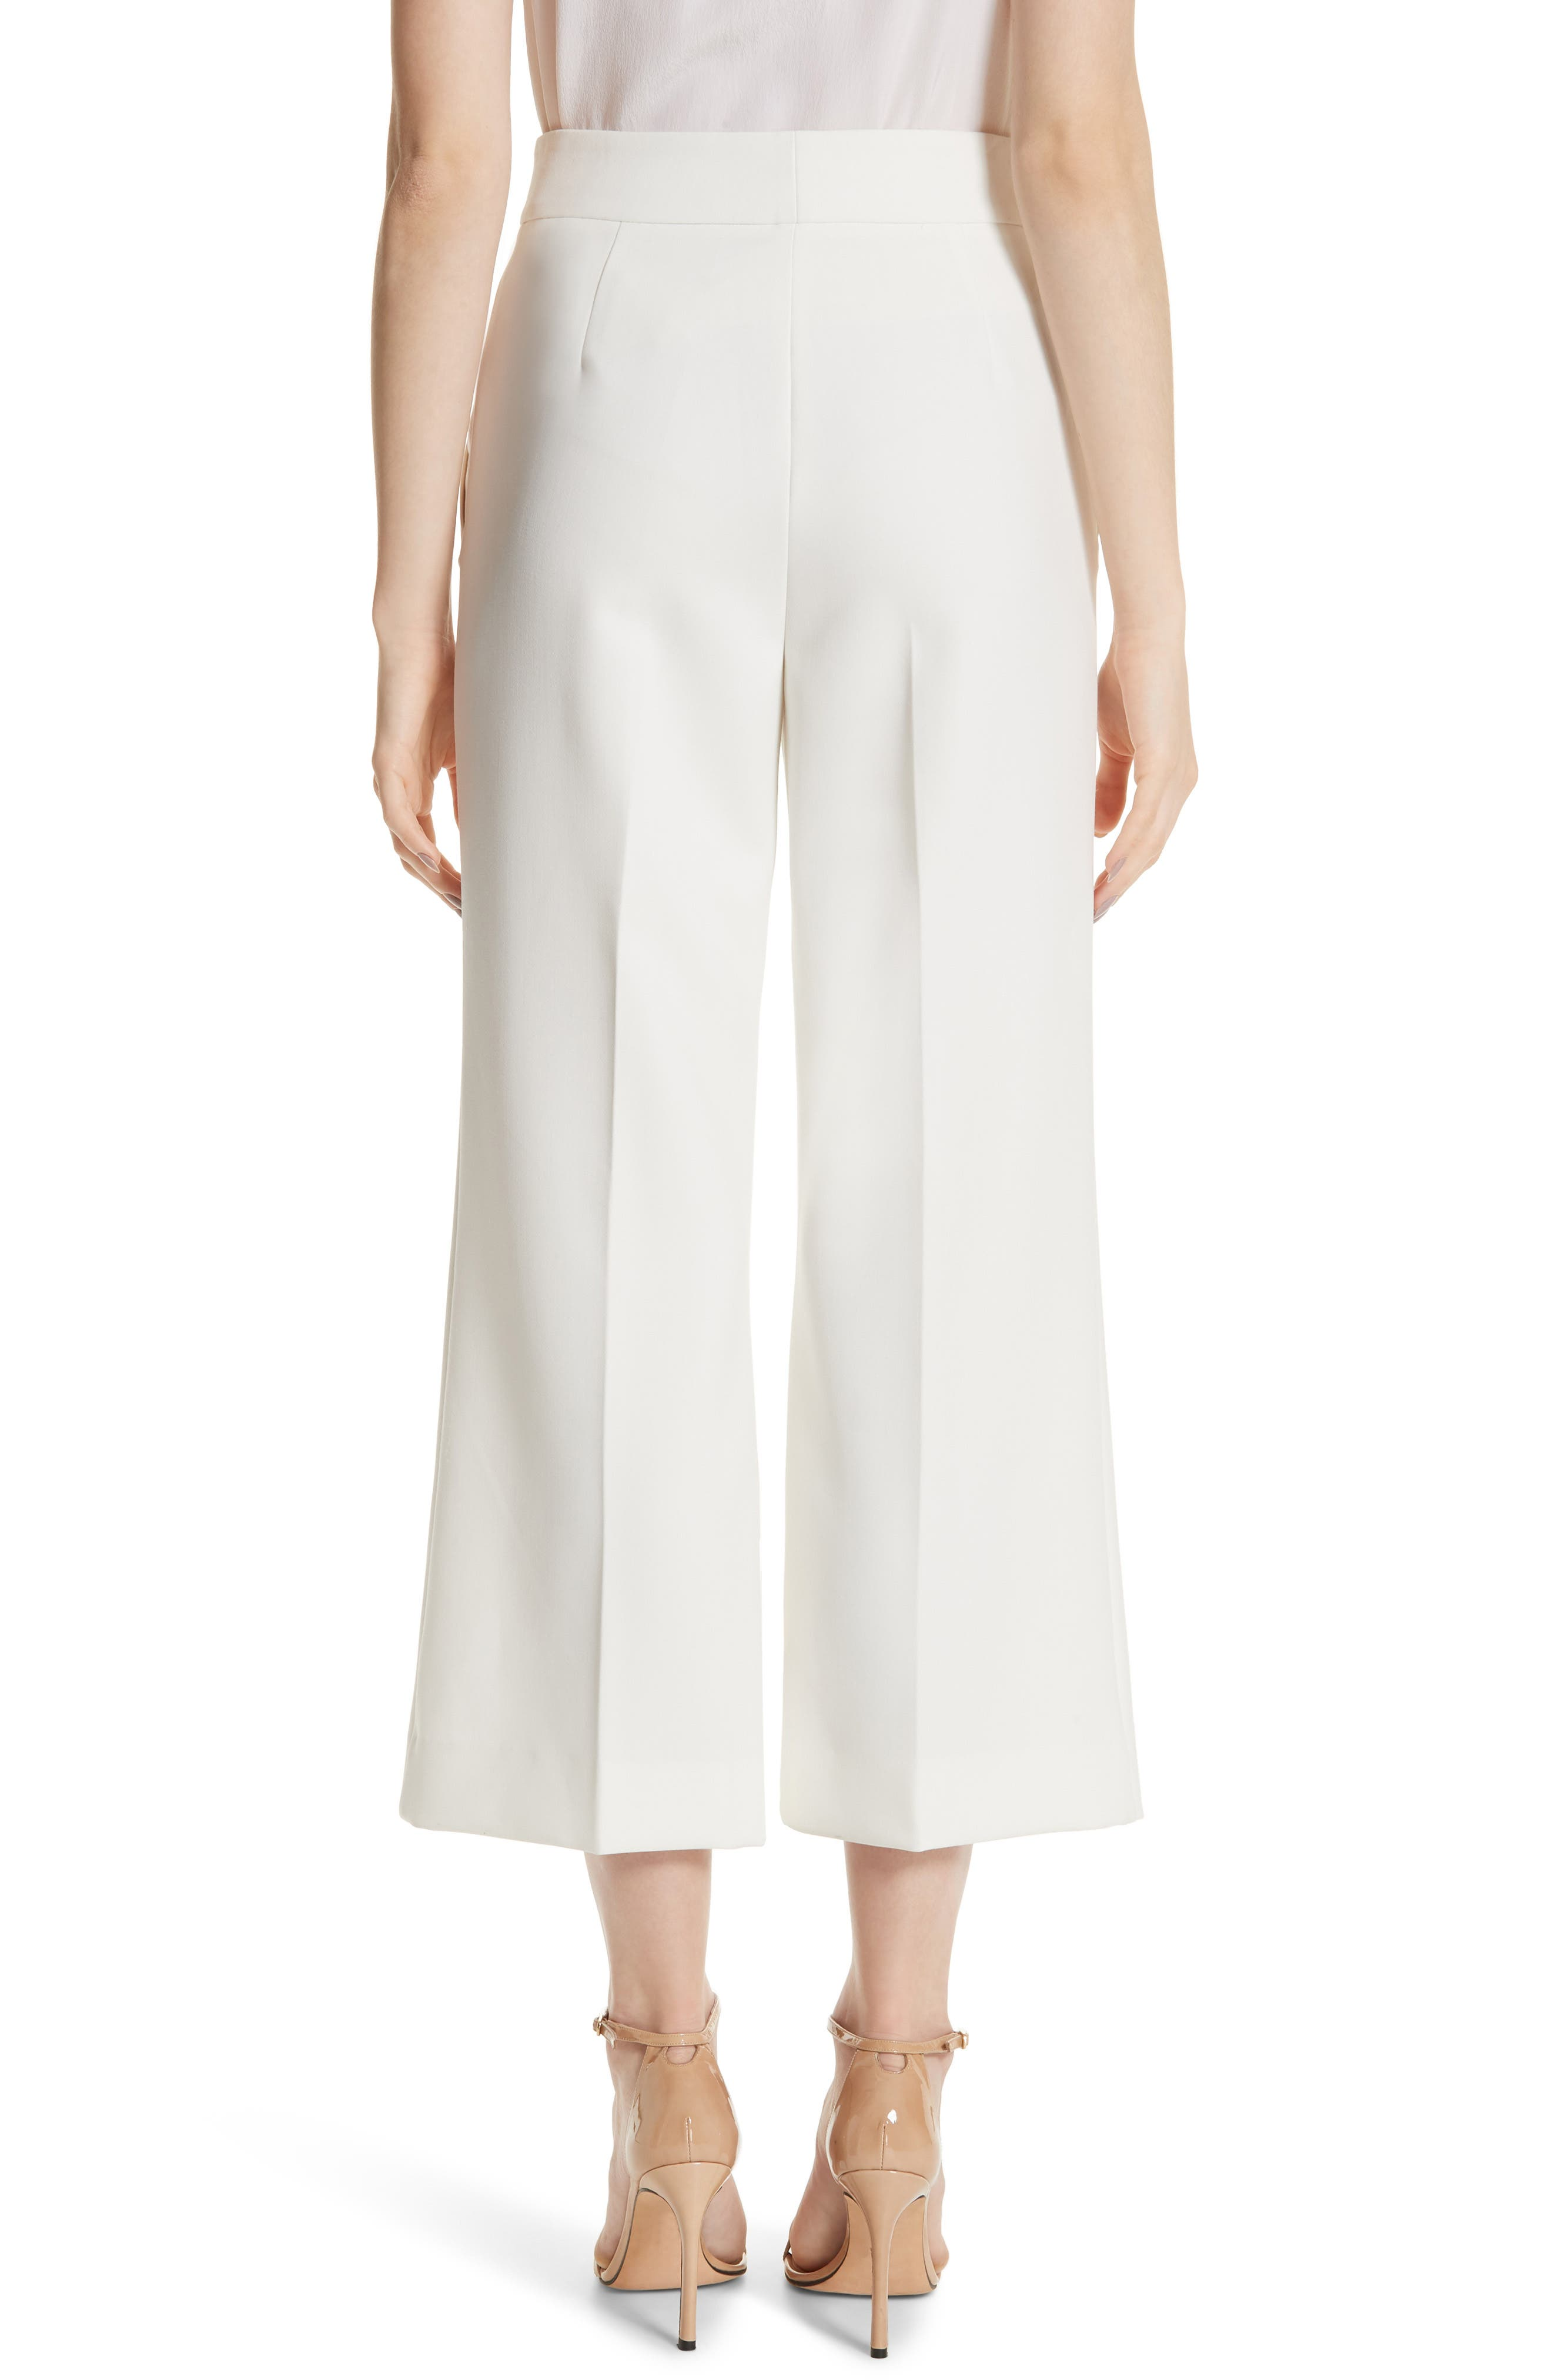 ST. JOHN COLLECTION, Bella Double Weave Crop Flare Pants, Alternate thumbnail 2, color, CREAM